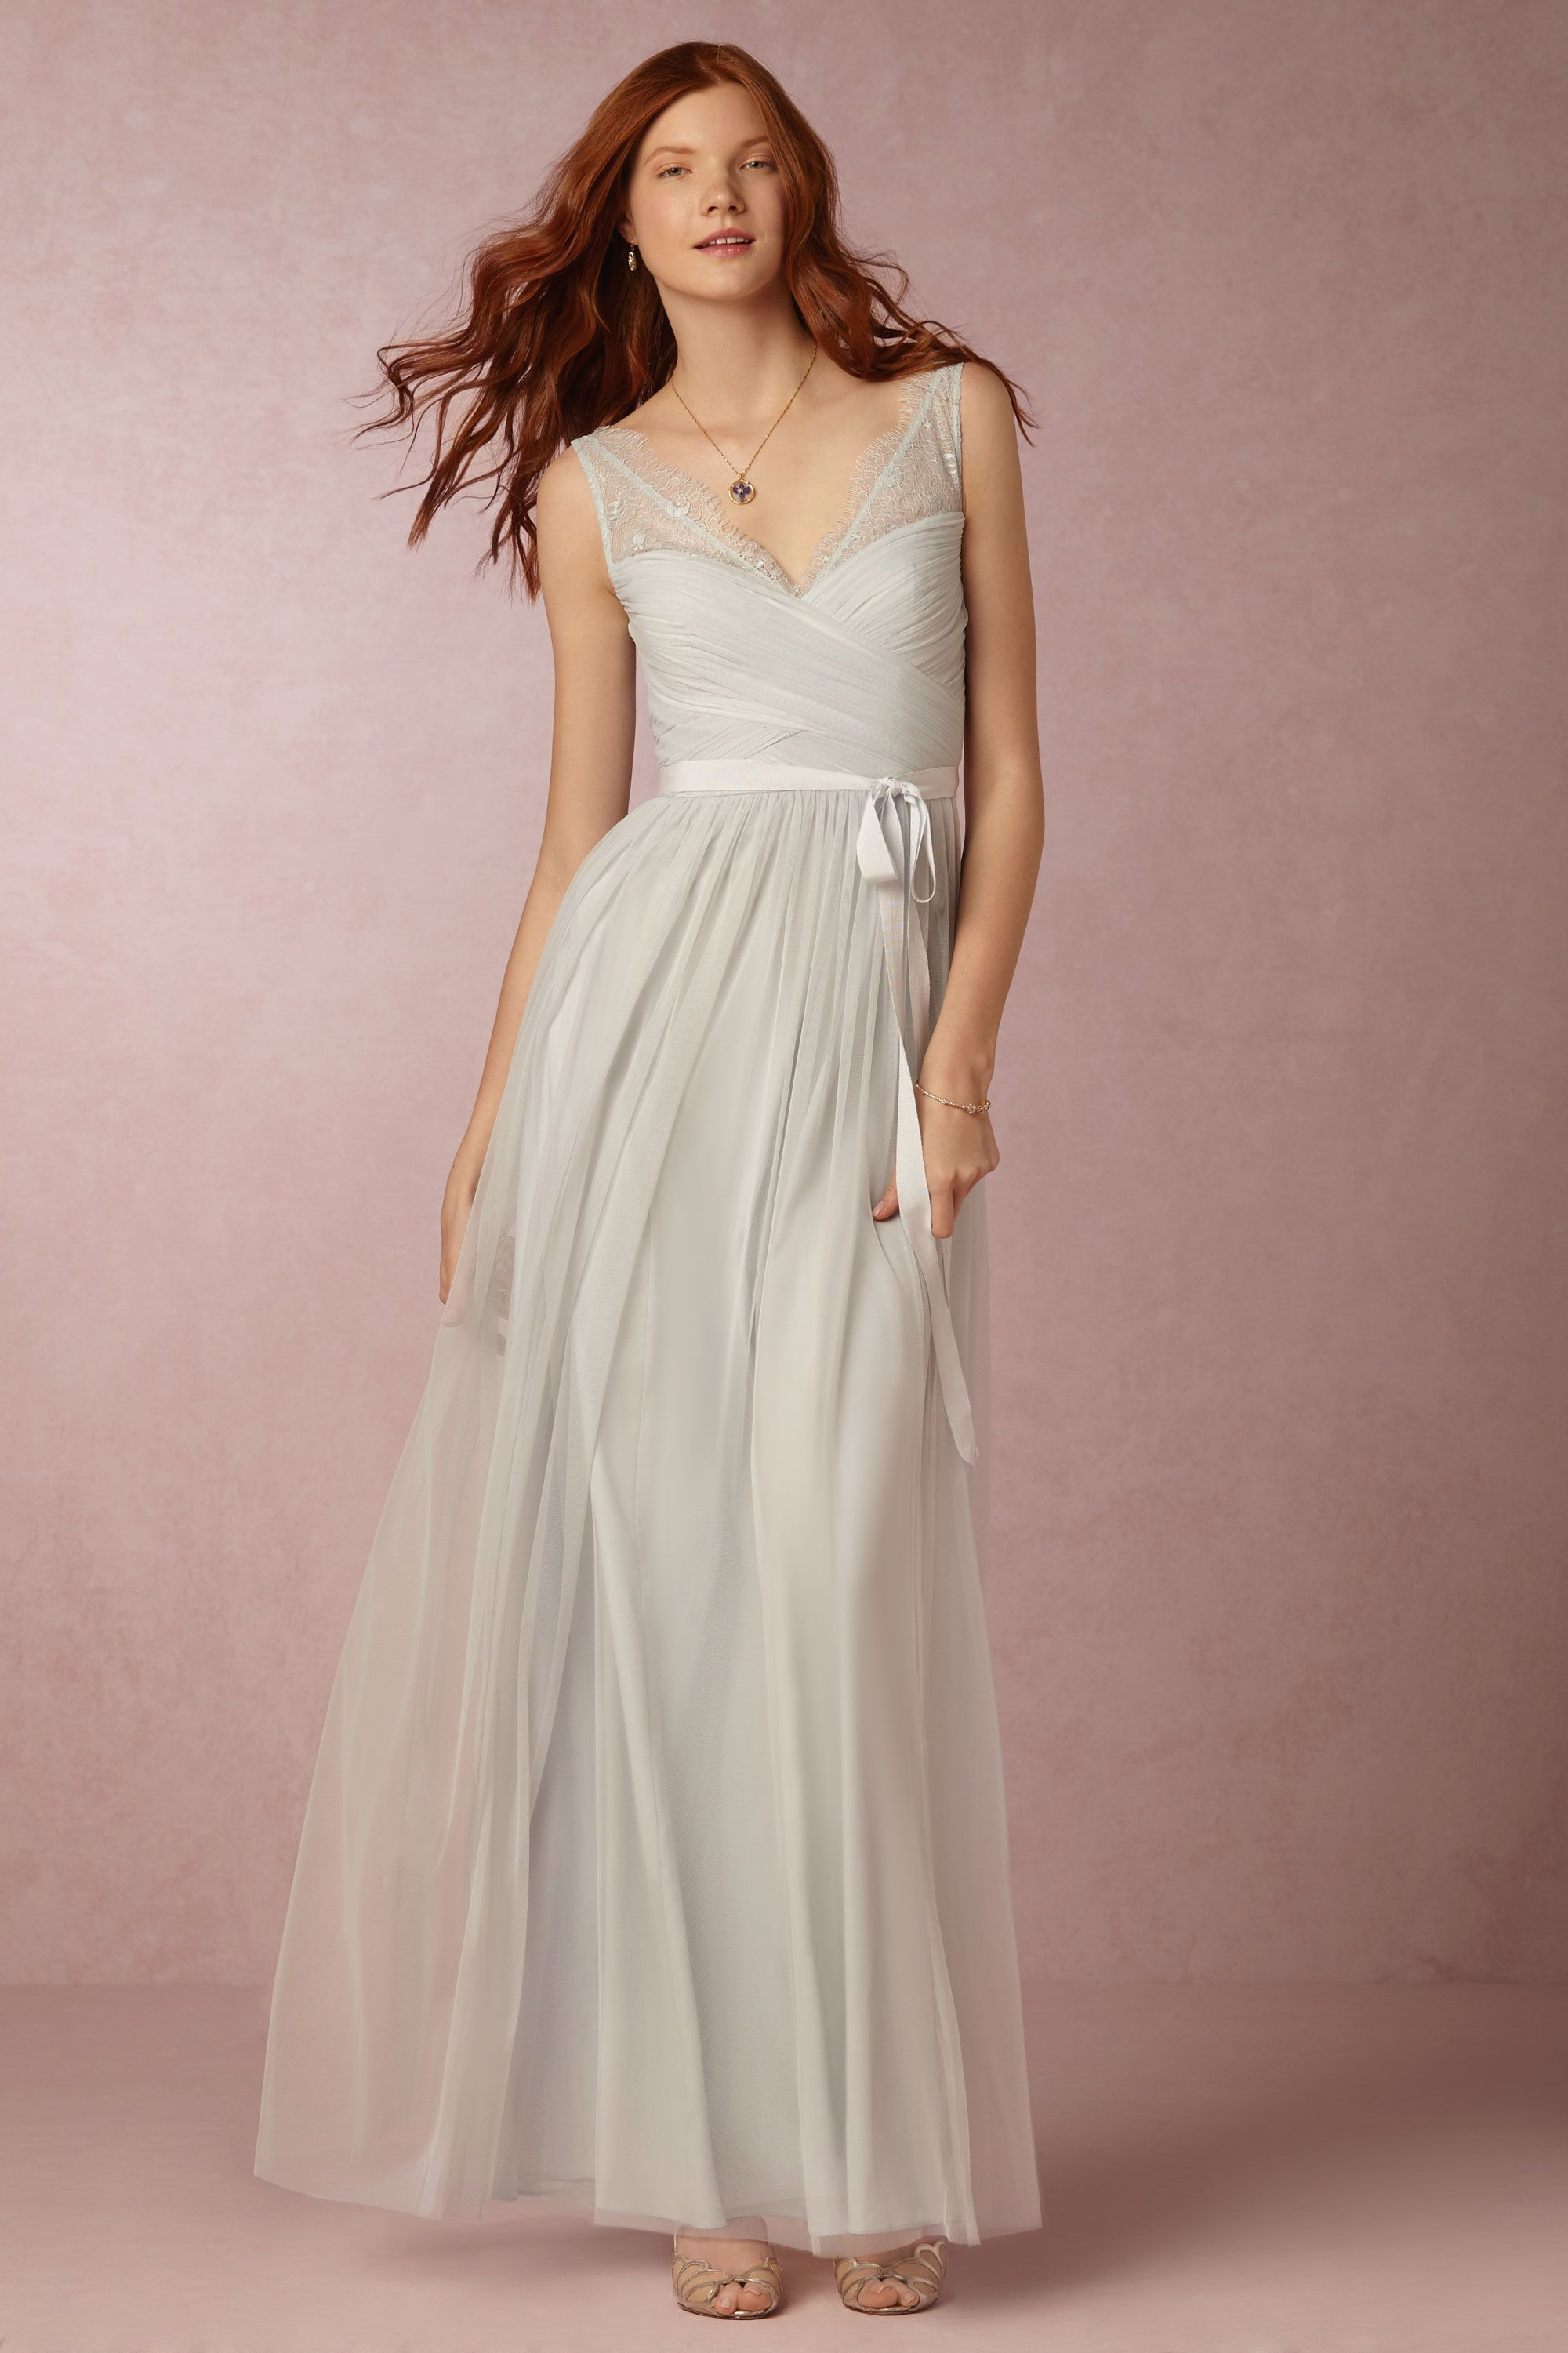 Fleur bridesmaid dress in powder blue from bhldn something blue fleur bridesmaid dress in powder blue from bhldn ombrellifo Image collections